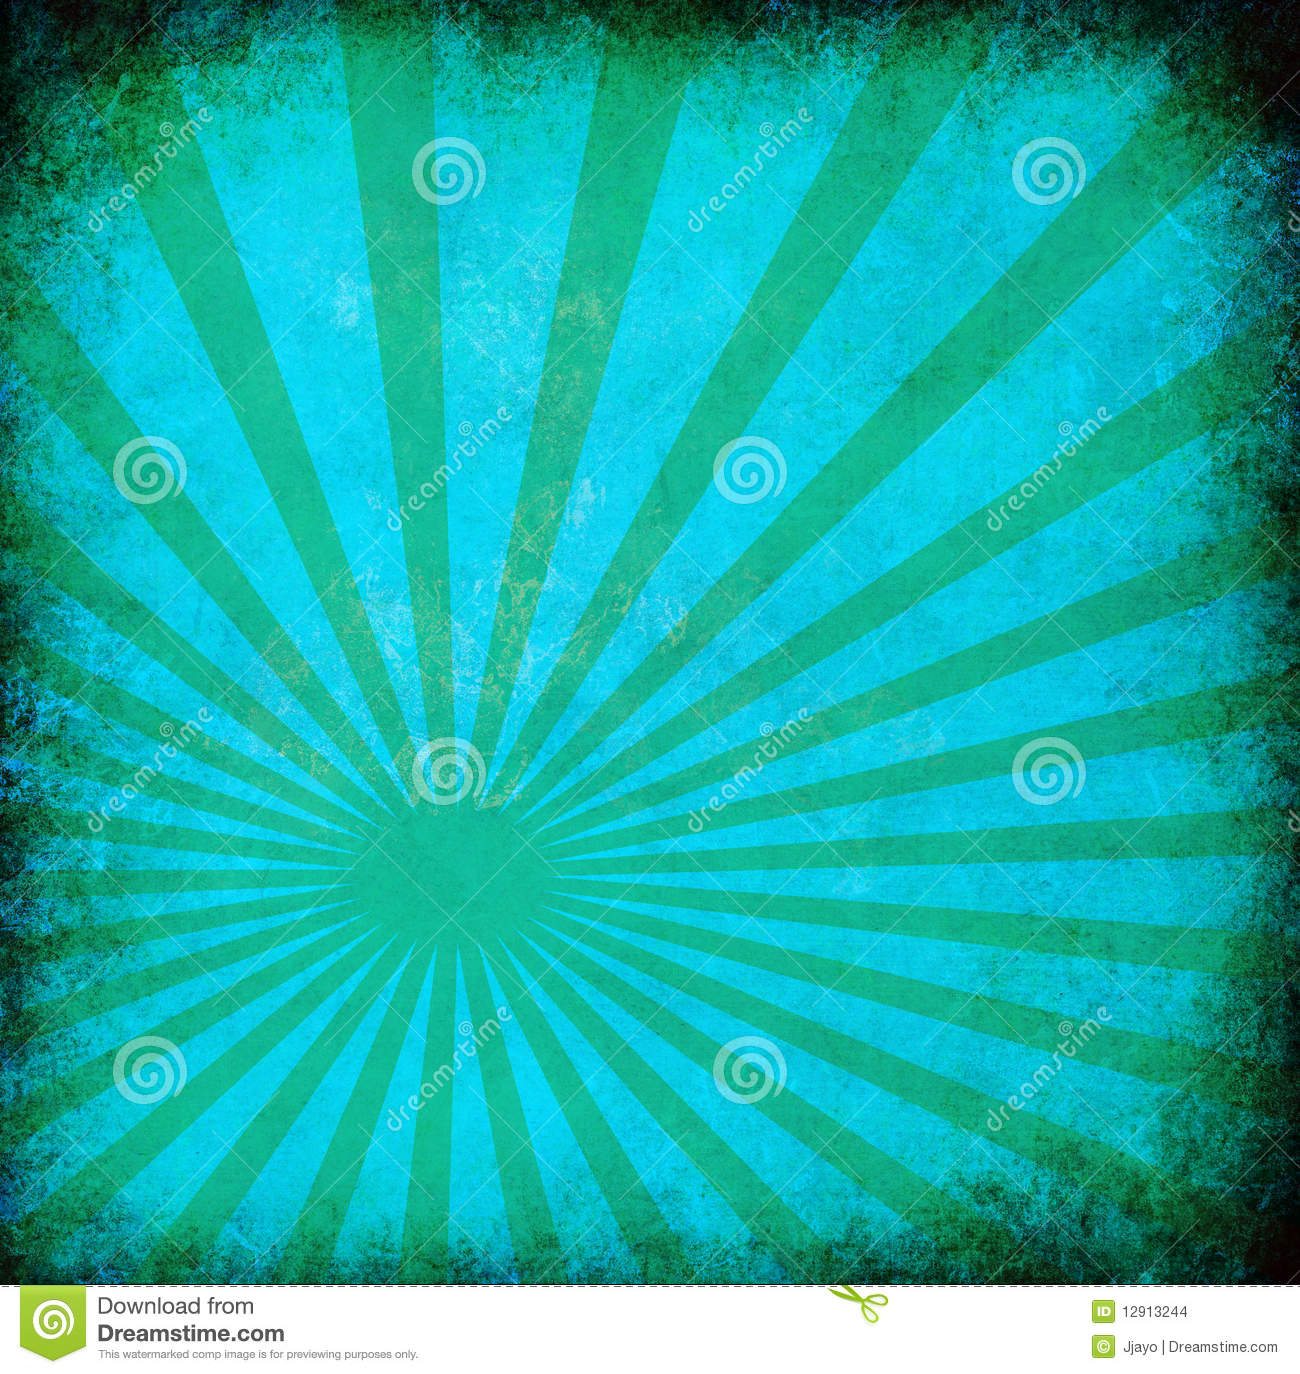 Turquoise vintage grunge background with sun rays